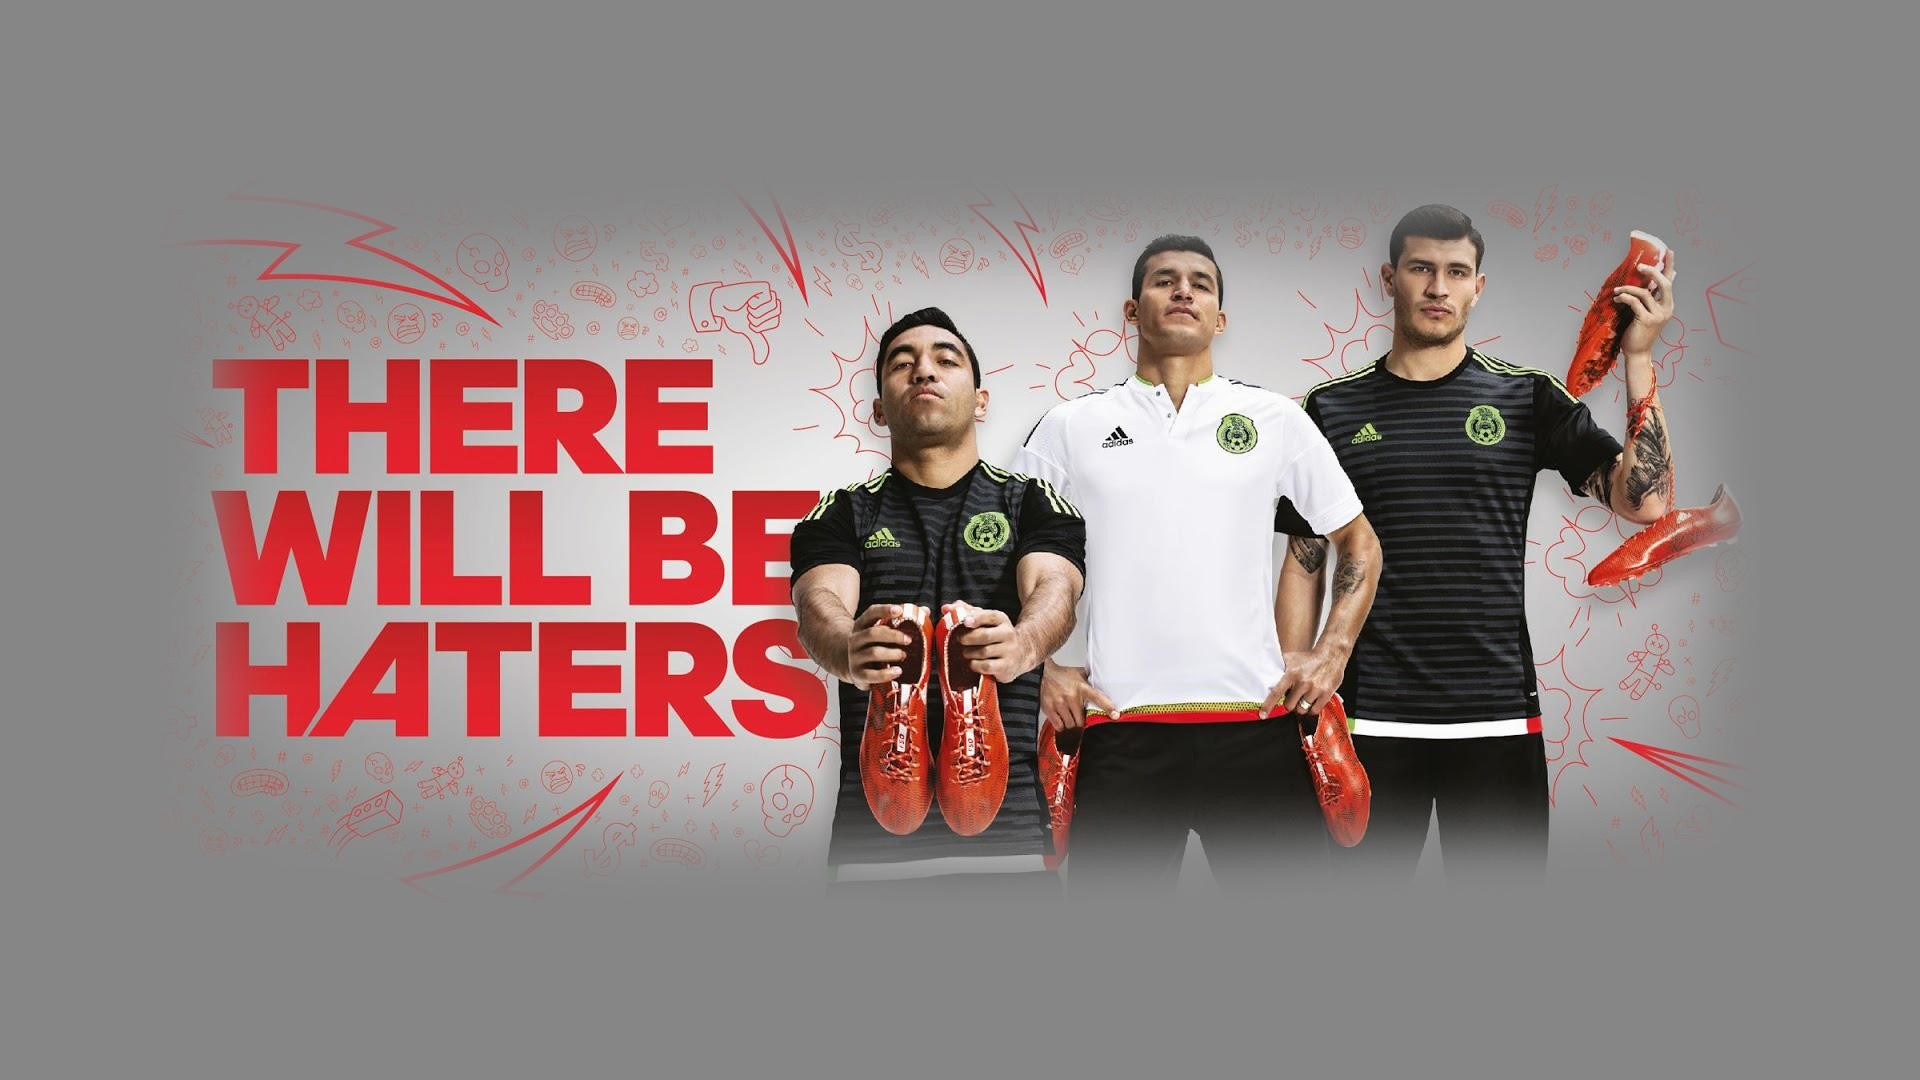 wallpaper.wiki-Free-Download-Cool-Soccer-Image-PIC-